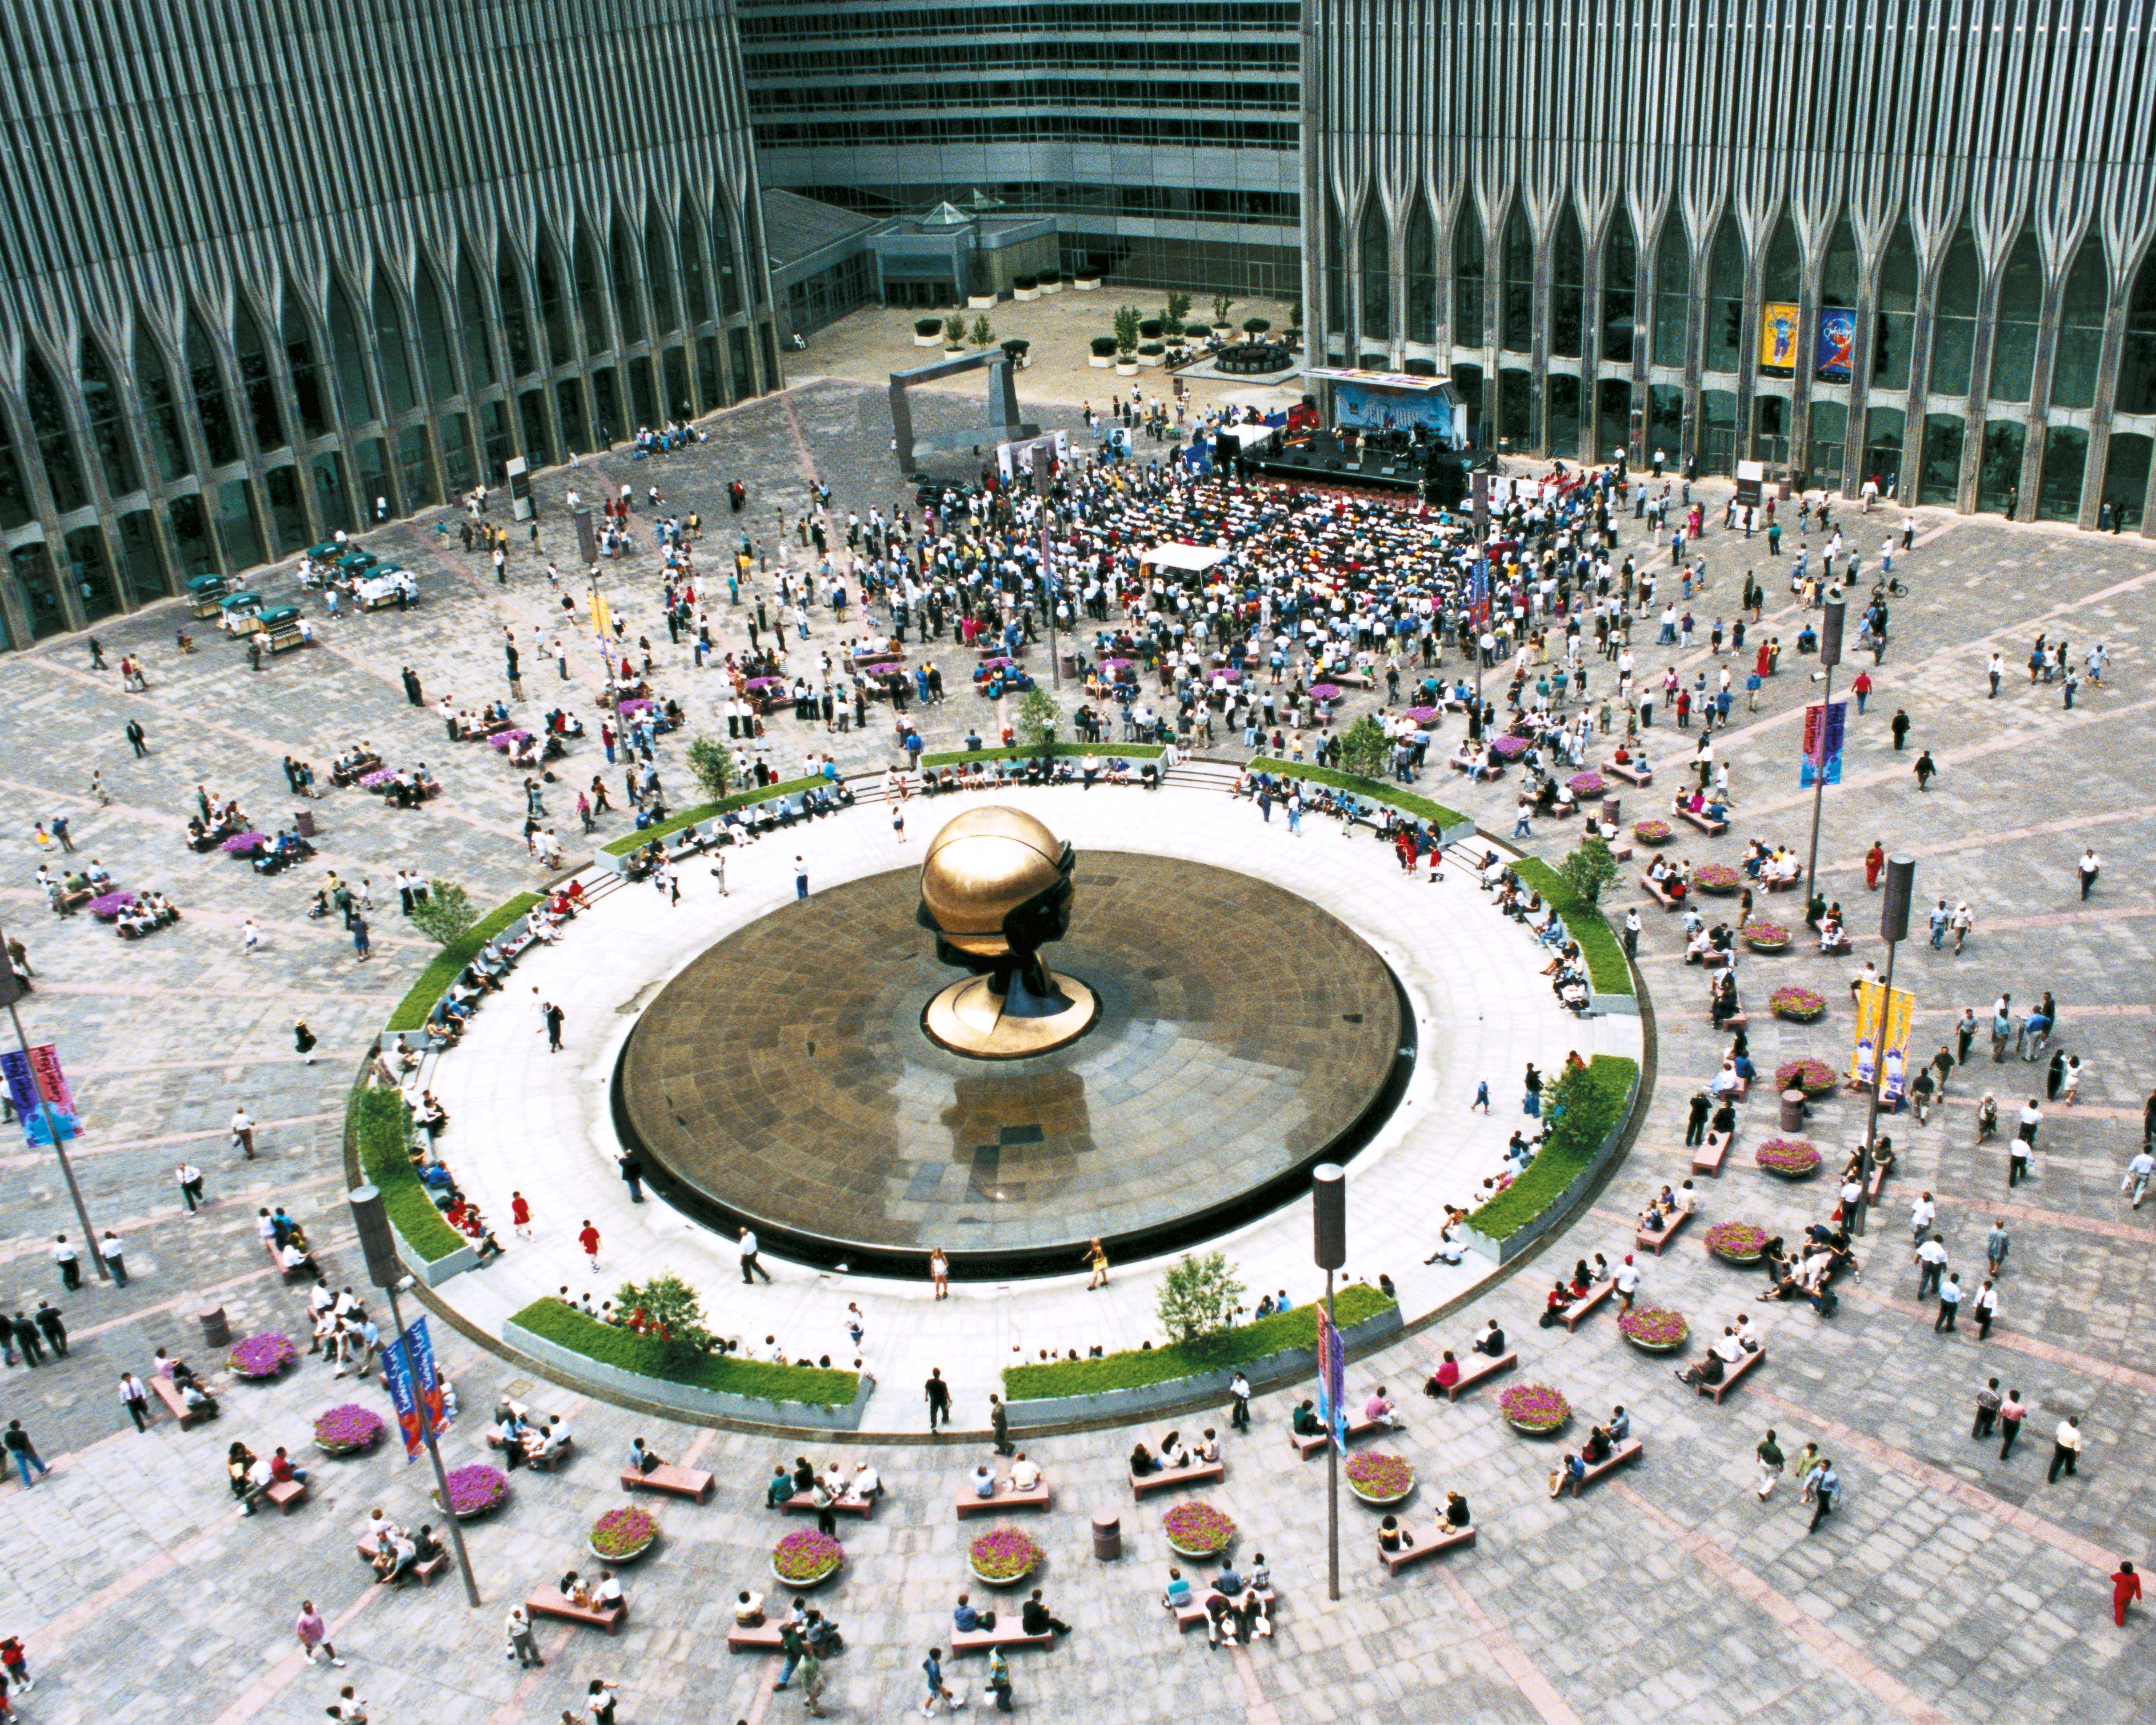 """""""The Sphere at Fountain Plaza,"""" sculpture by Fritz Koenig, before the terrorist attacks of Sept. 11, 2001. (Photo courtesy Port Authority of New York and New Jersey)"""